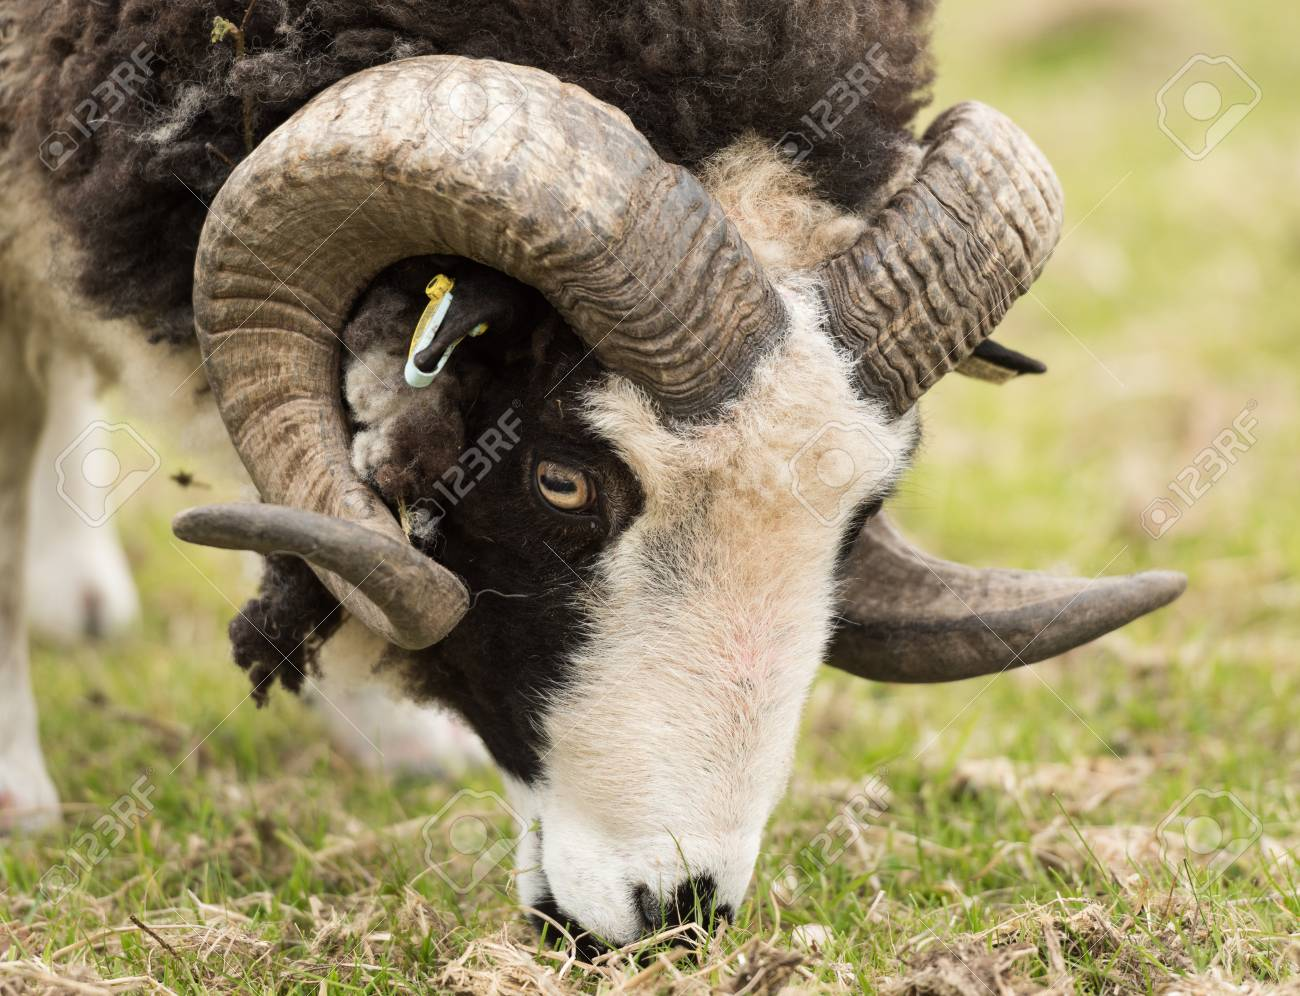 a black and white ram with beautiful strong curly horns eating stock photo picture and royalty free image image 94667330 a black and white ram with beautiful strong curly horns eating